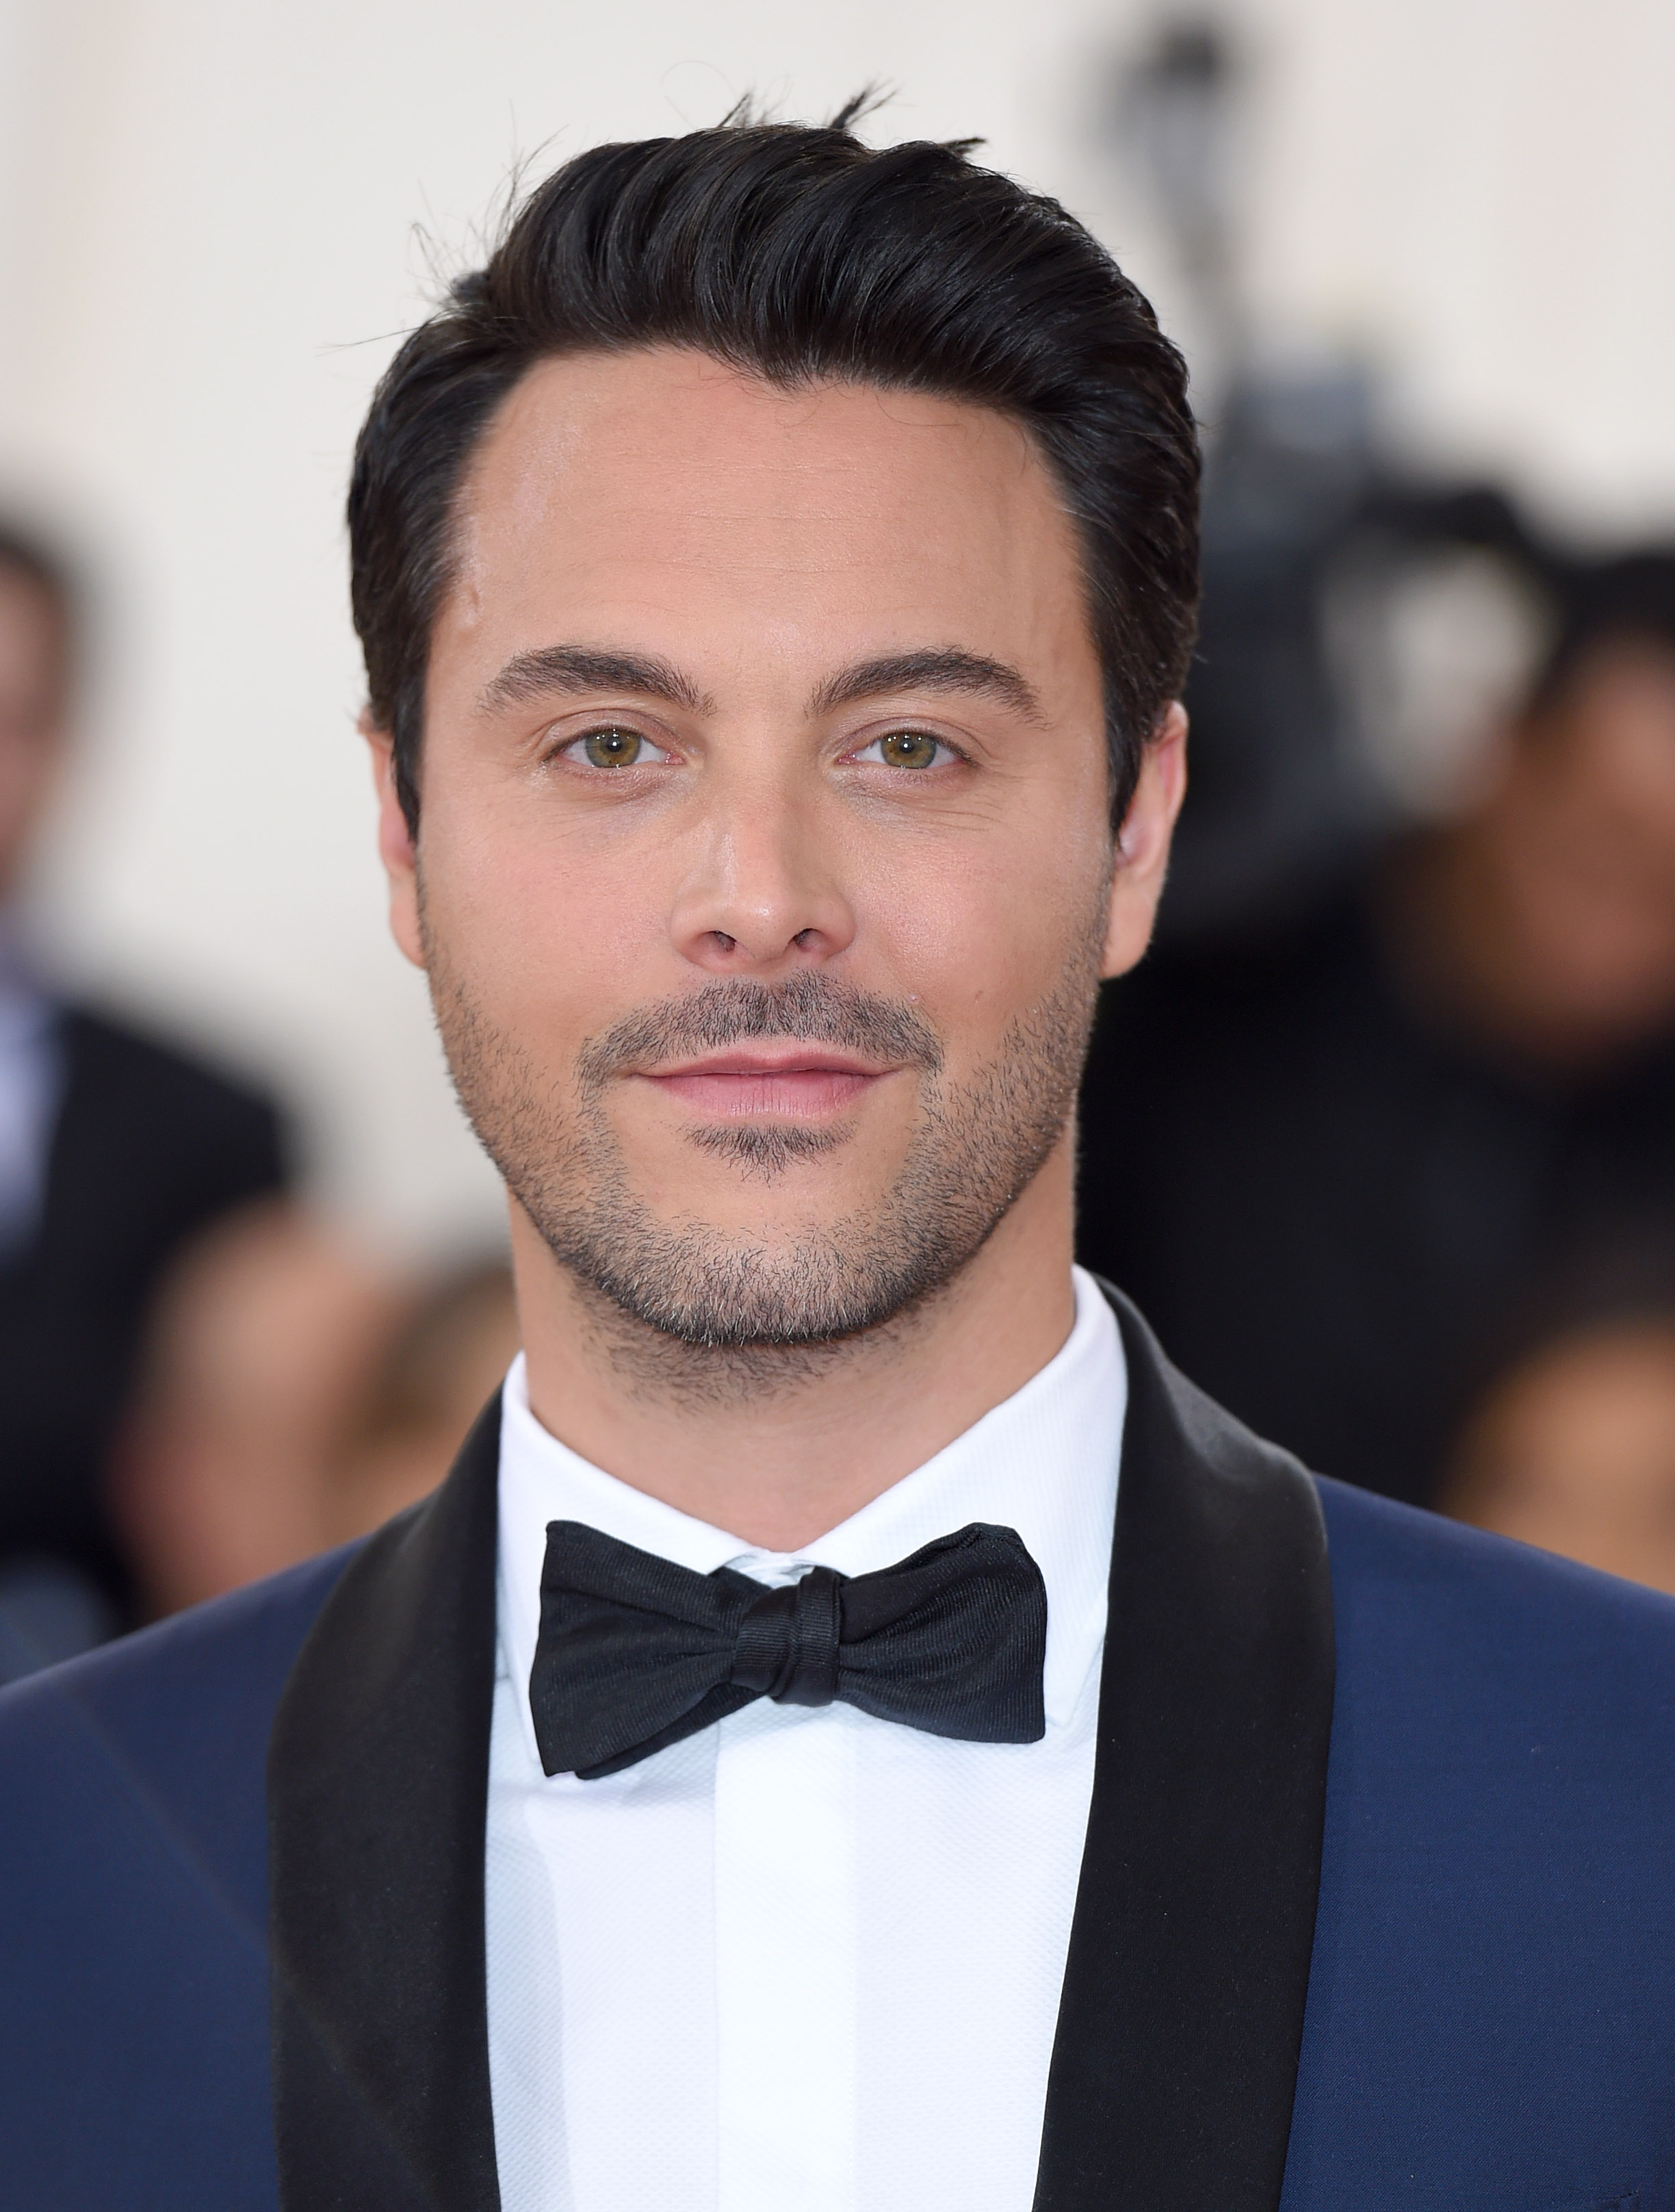 Jack Huston arrives for the Costume Institute Gala at Metropolitan Museum of Art on May 2, 2016 in New York City.